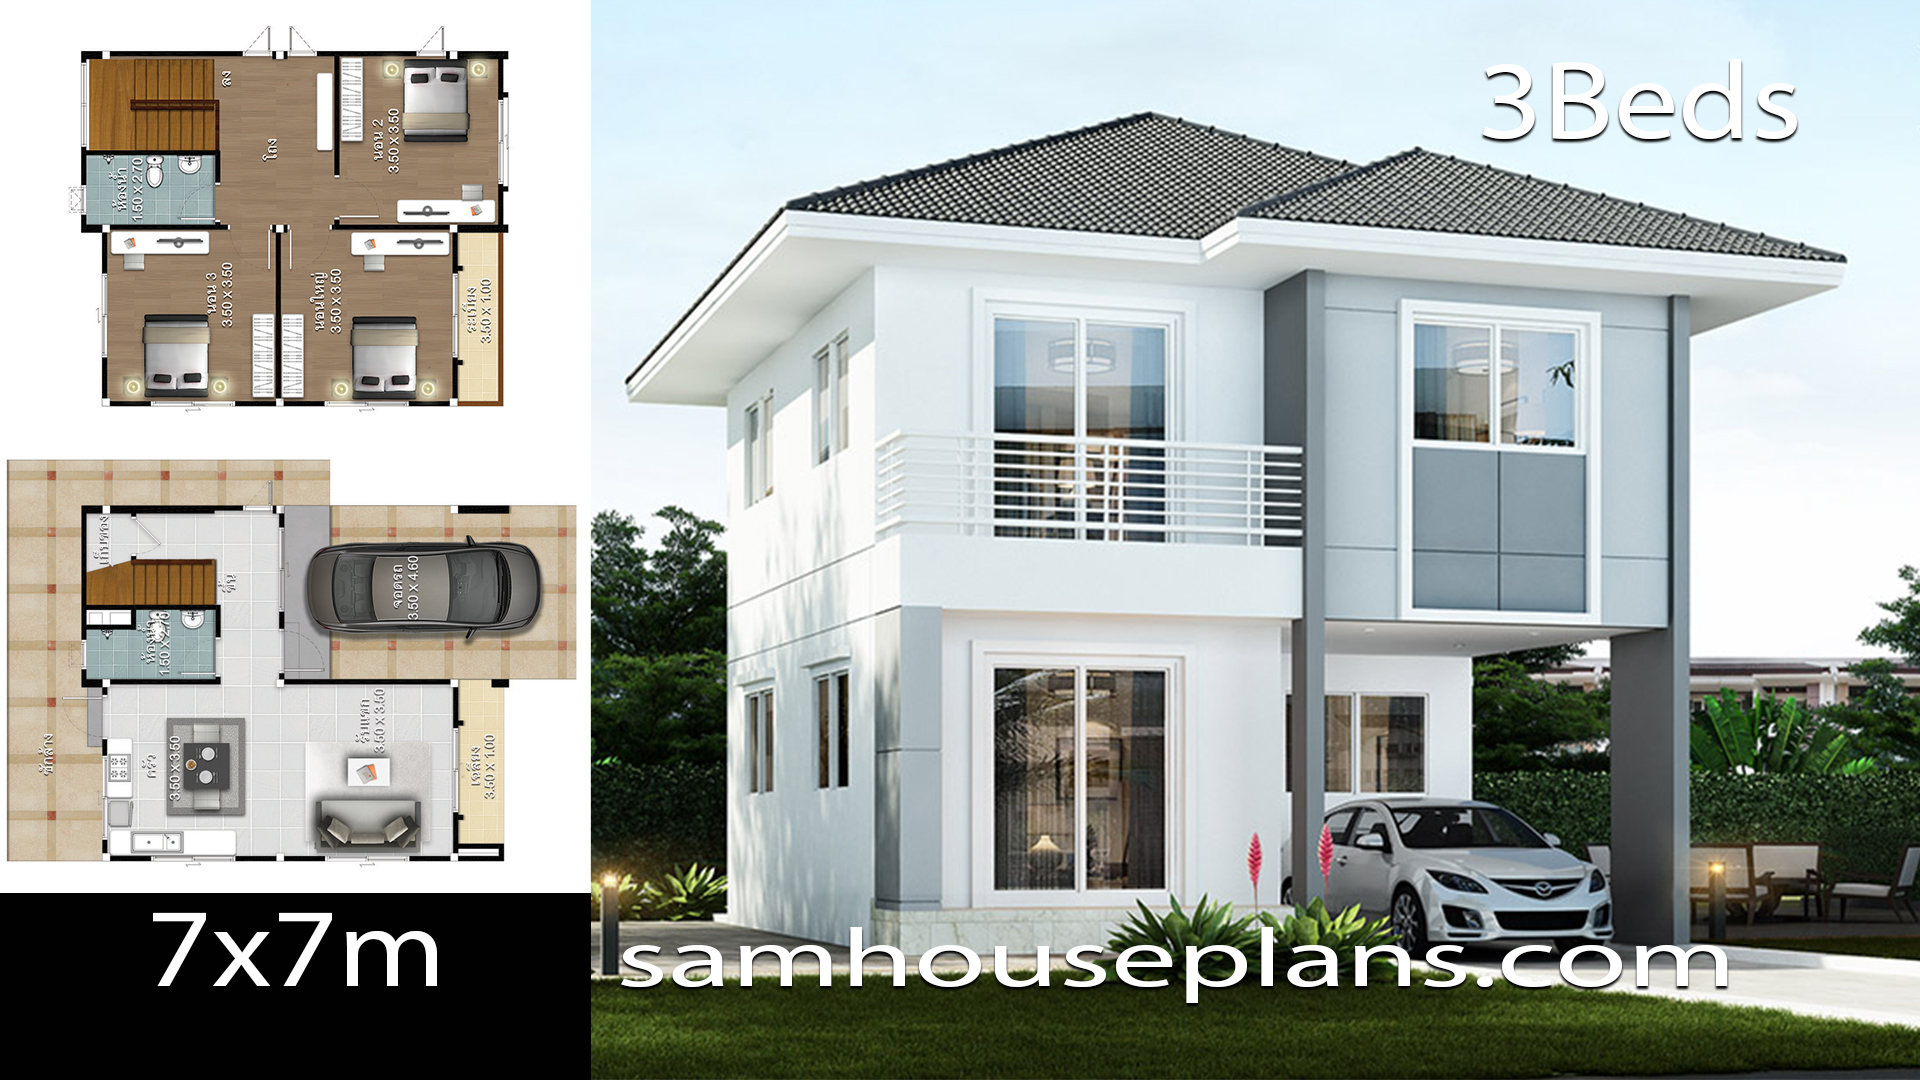 House Plans Idea 7x7 With 3 Bedrooms Samhouseplans,Baby Girl Baby Welcome Home Decoration India